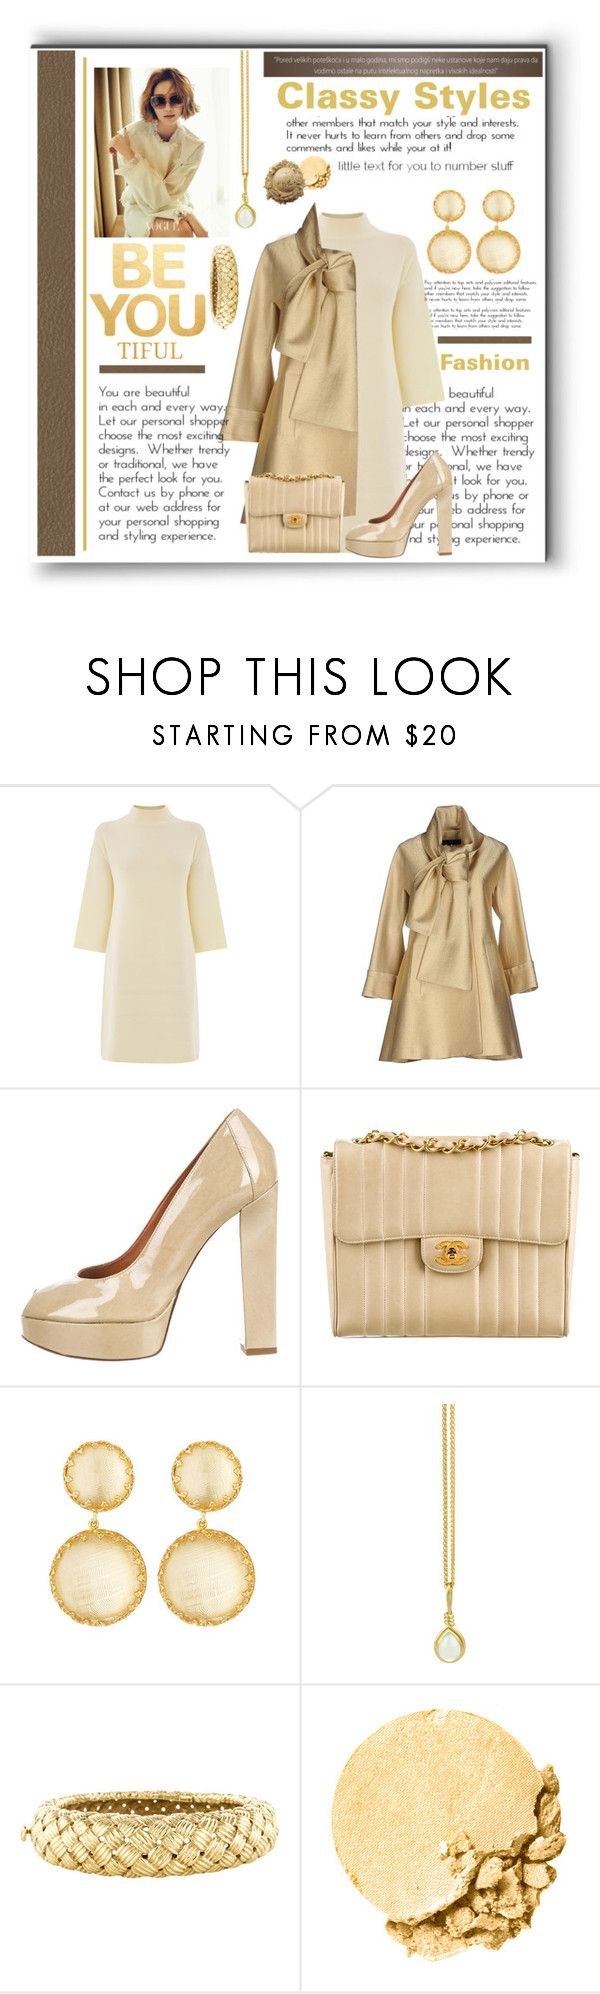 """""""Classy Styles"""" by diva1023 ❤ liked on Polyvore featuring Warehouse, Elie Saab, Lanvin, Chanel, Larkspur & Hawk, Prism Design, Angela Cummings, Lancôme, women's clothing and women's fashion"""